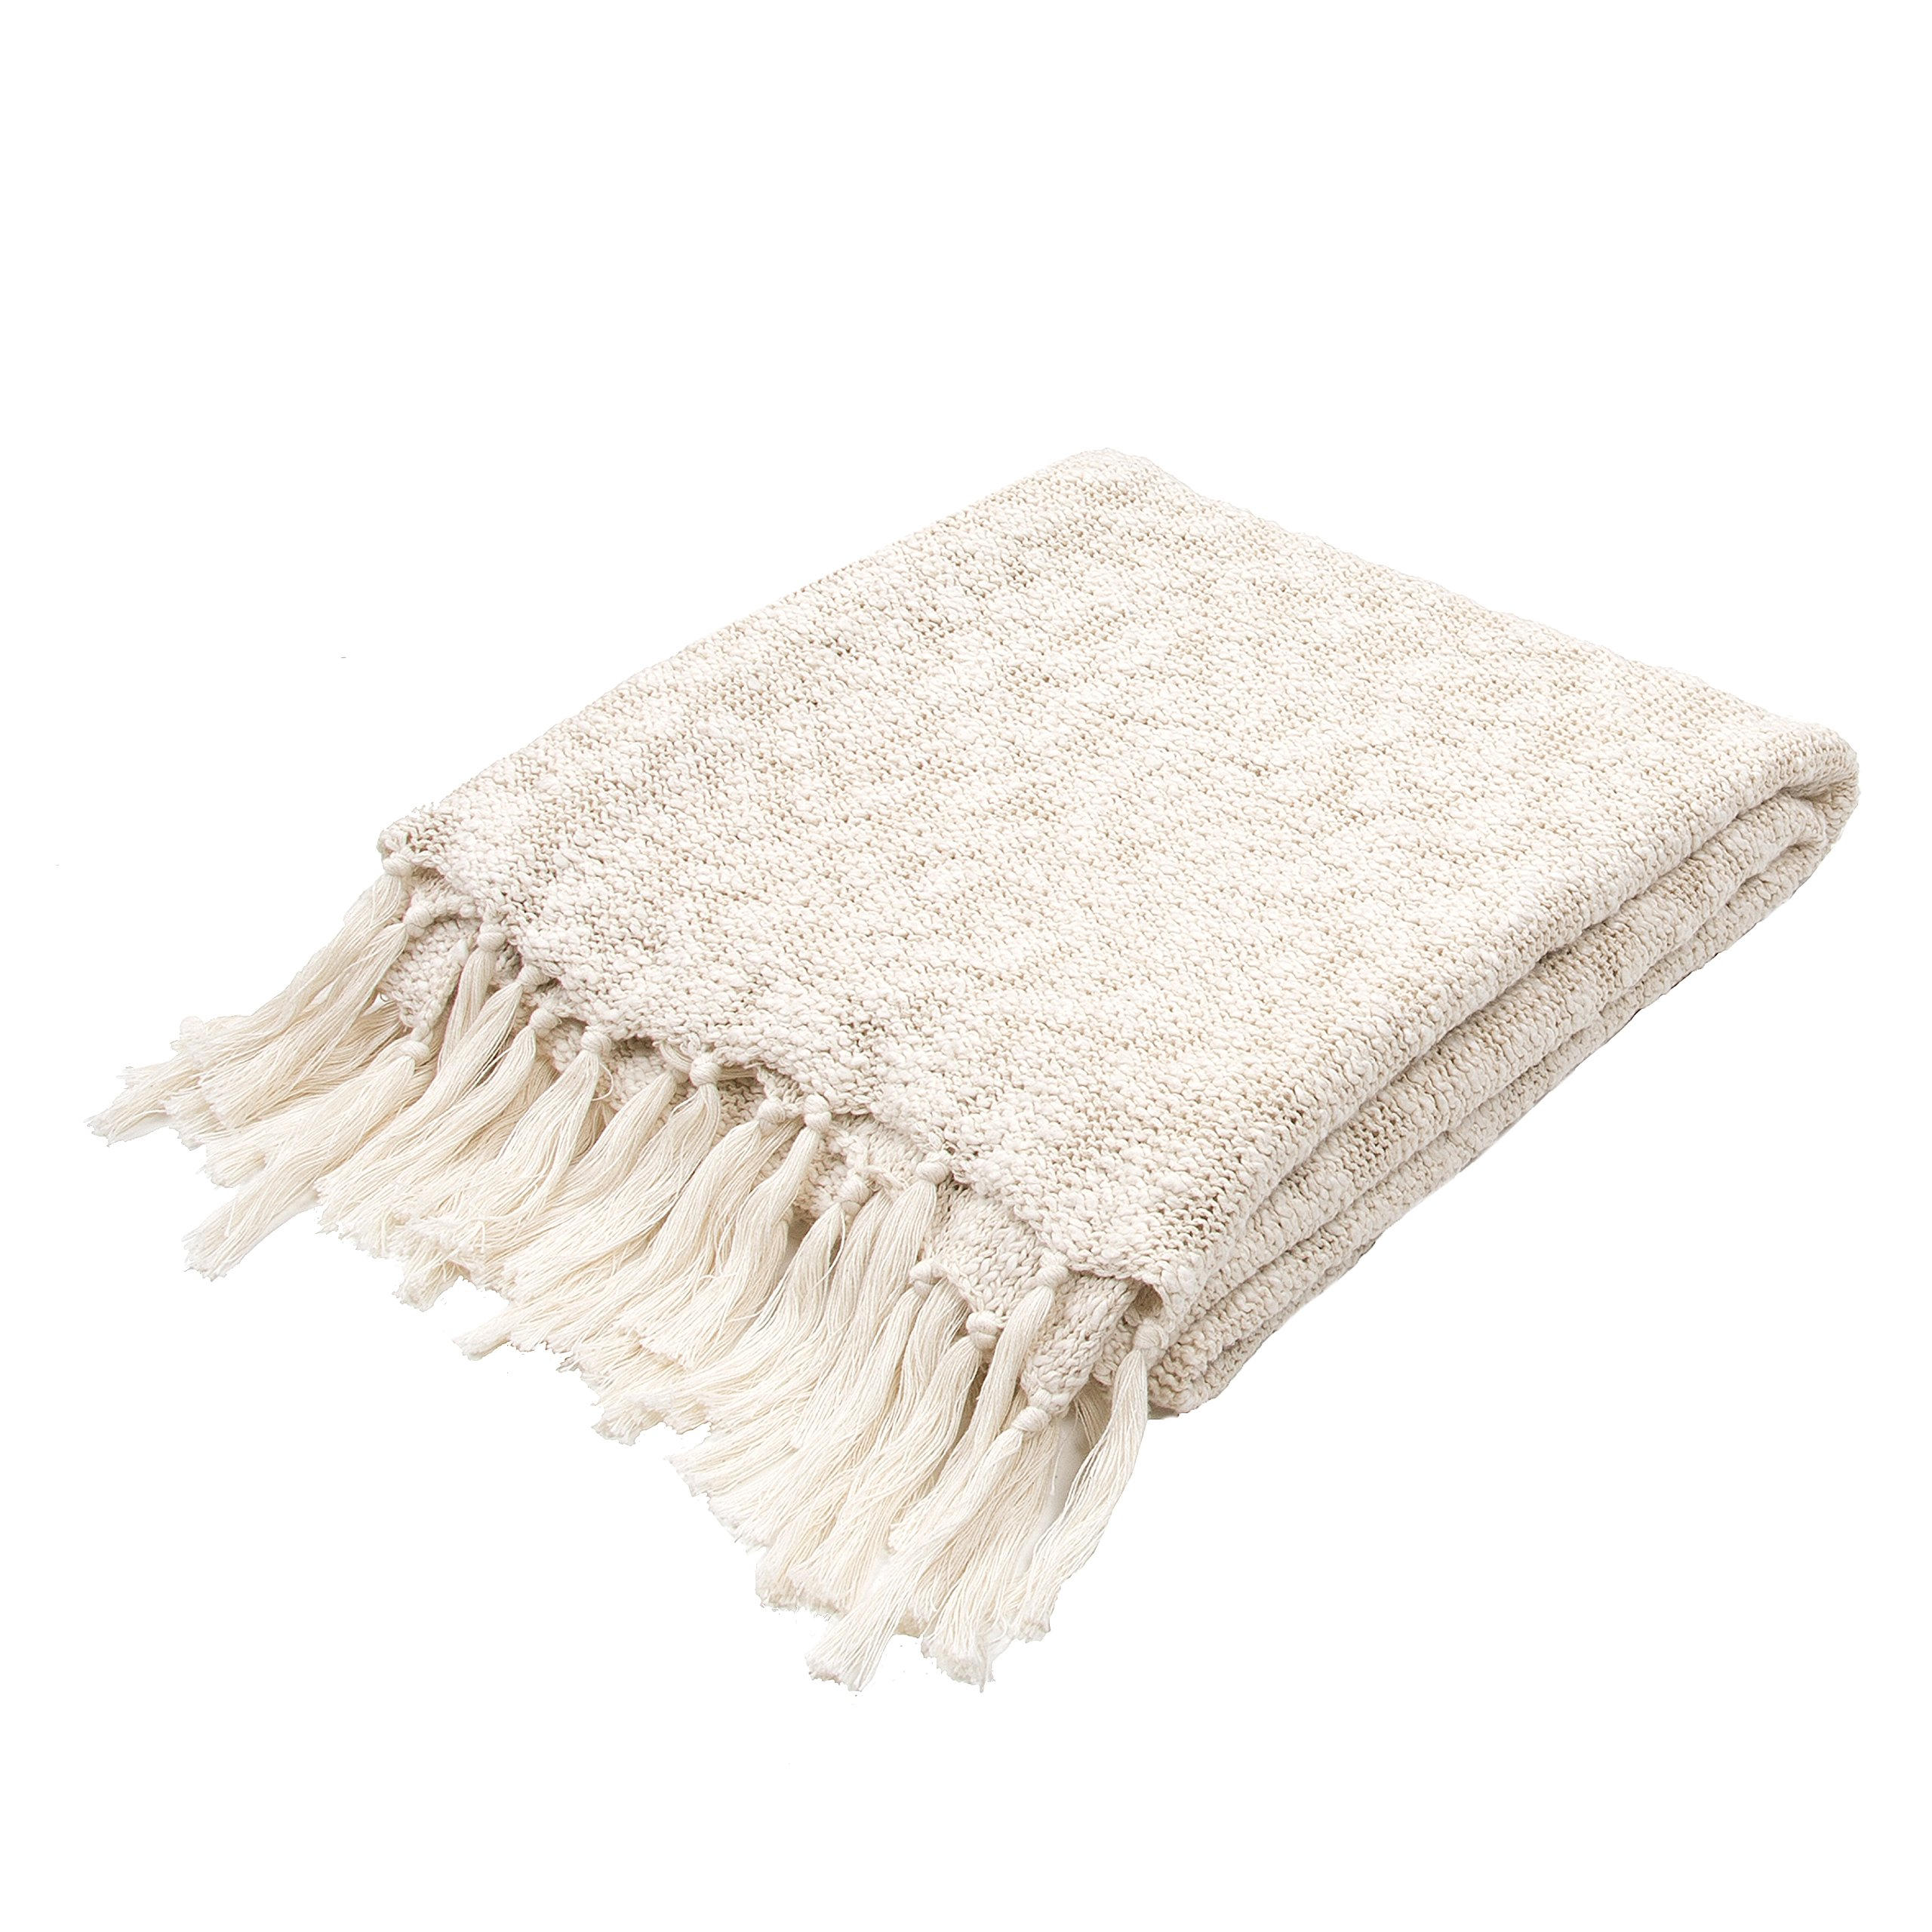 Jaipur Soft Hand Solid Pattern Ivory Cotton Throw, 50-Inch x 60-Inch, Angora Gem-2